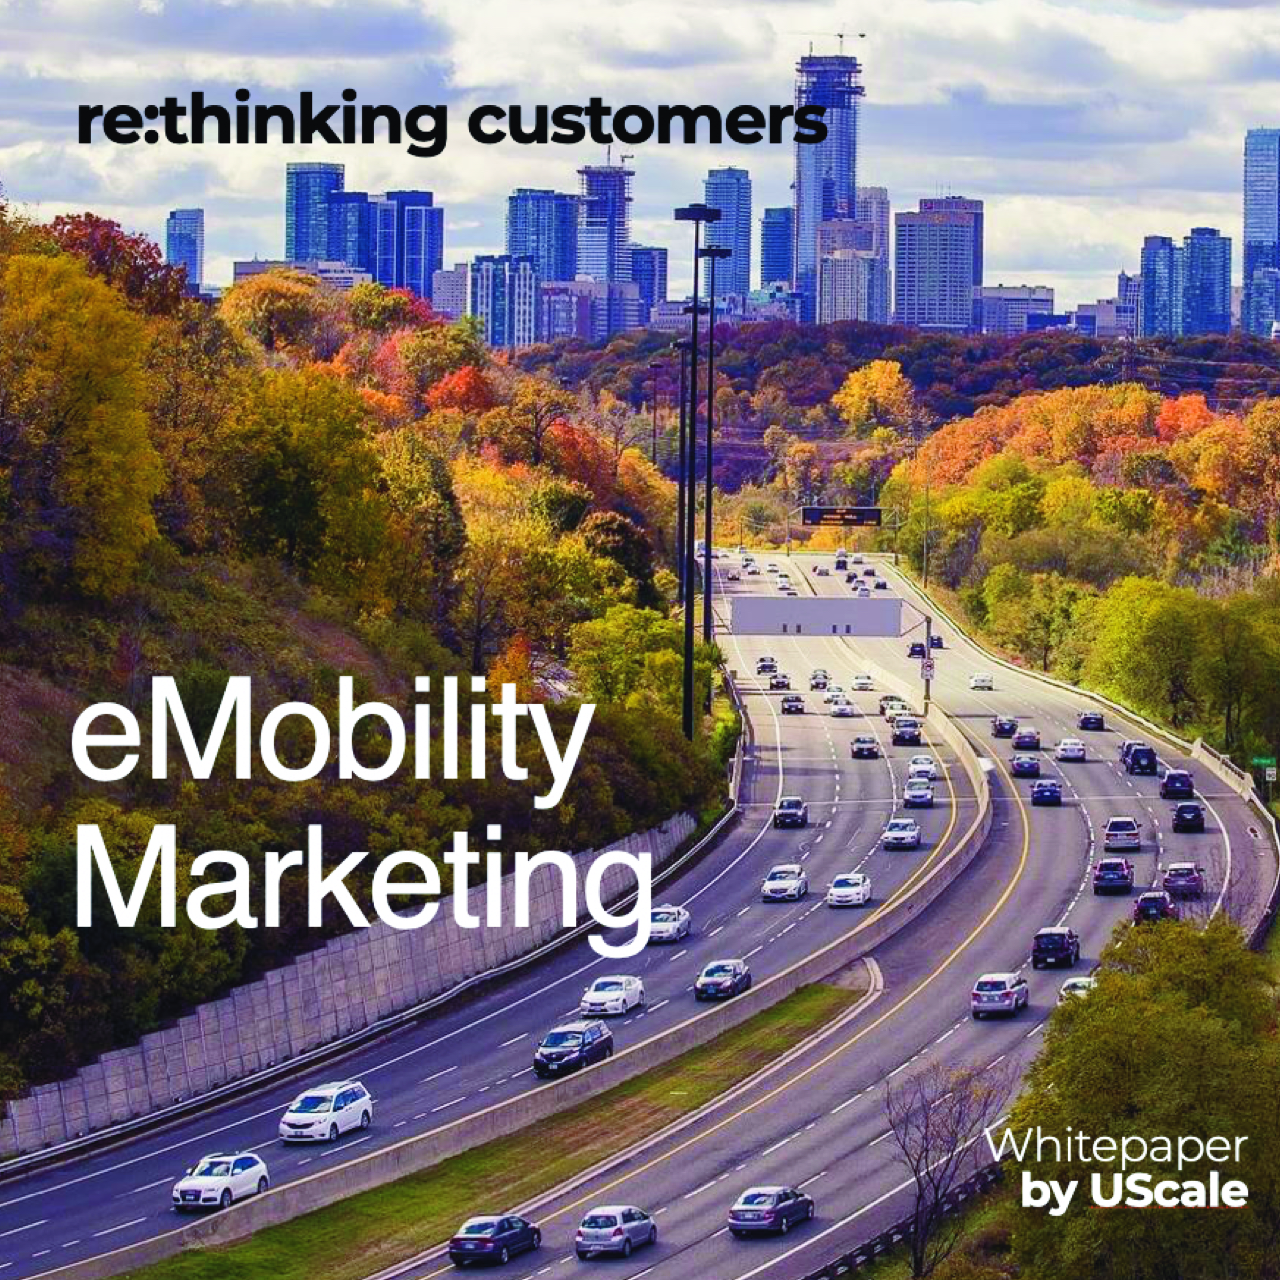 WhitePaper on marketing products and services in eMobility